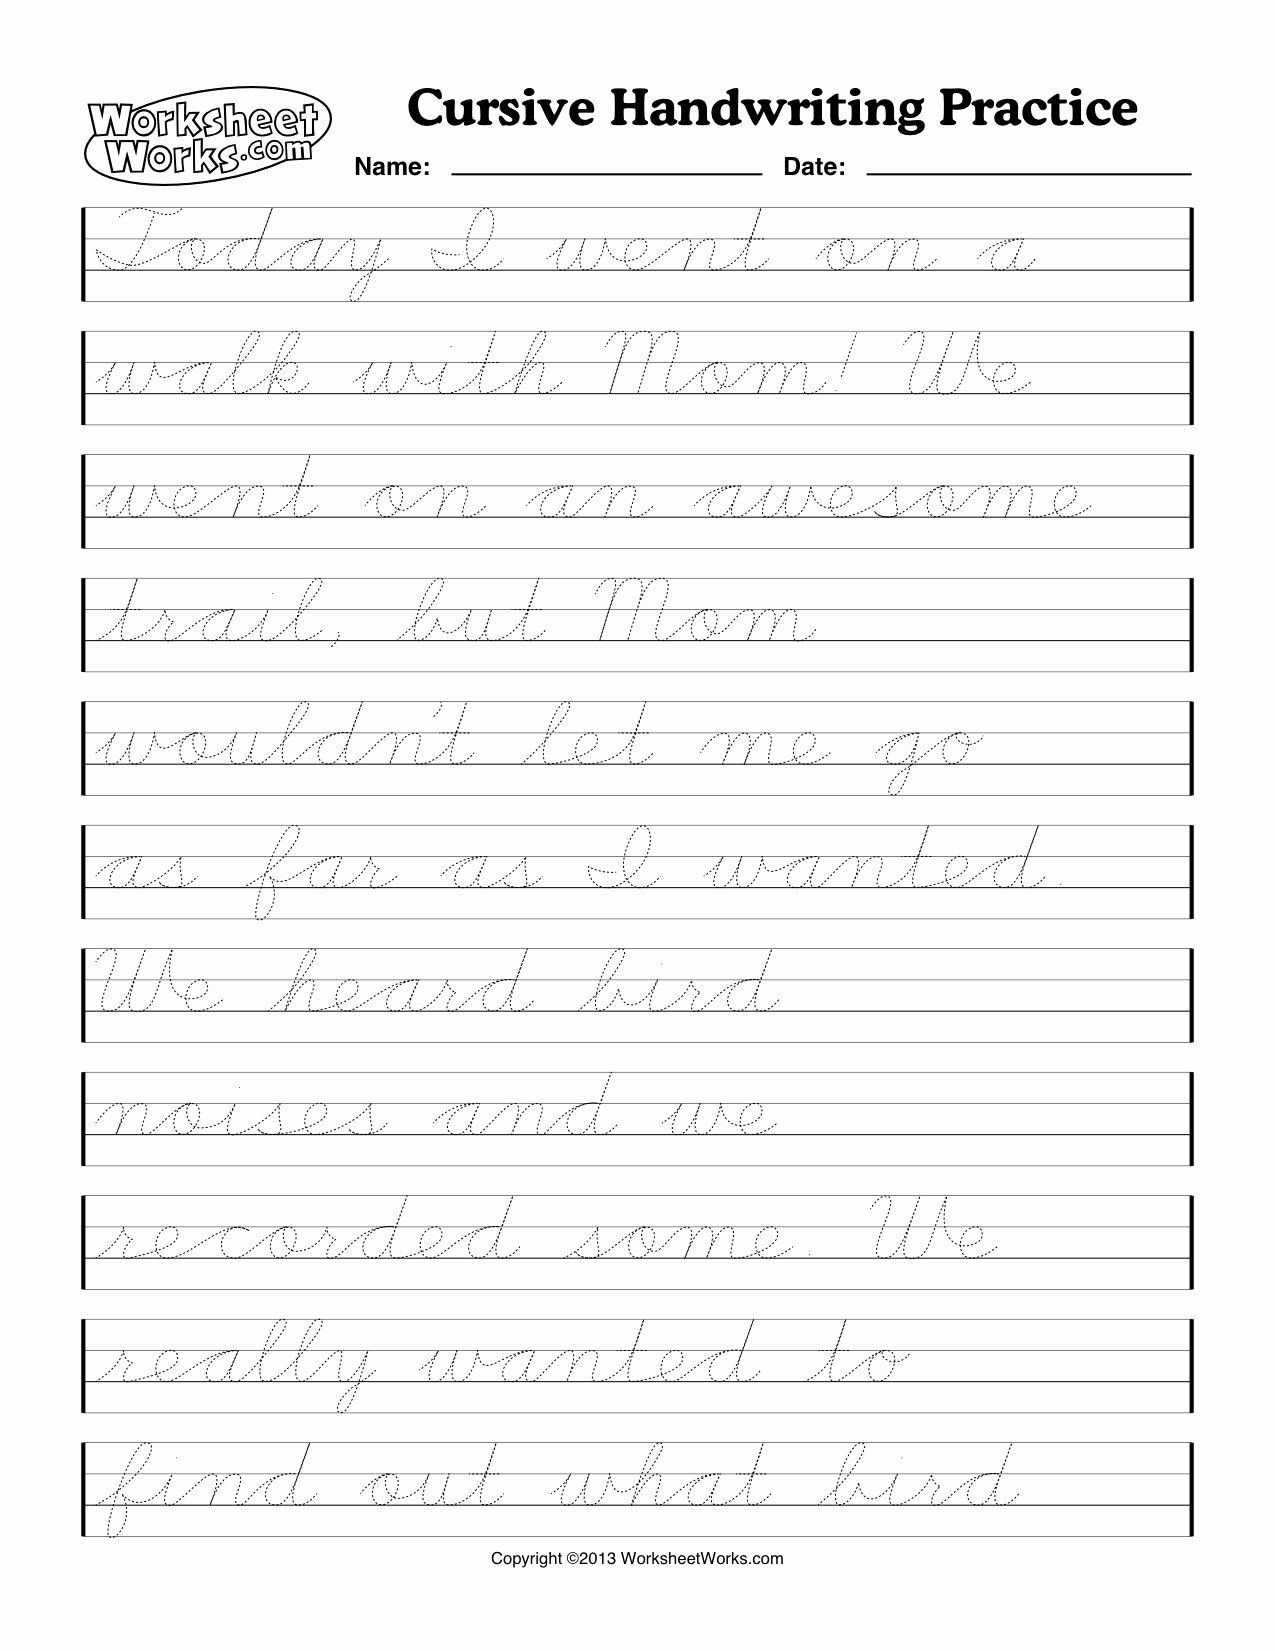 Pin On Worksheets For Kids Ideas